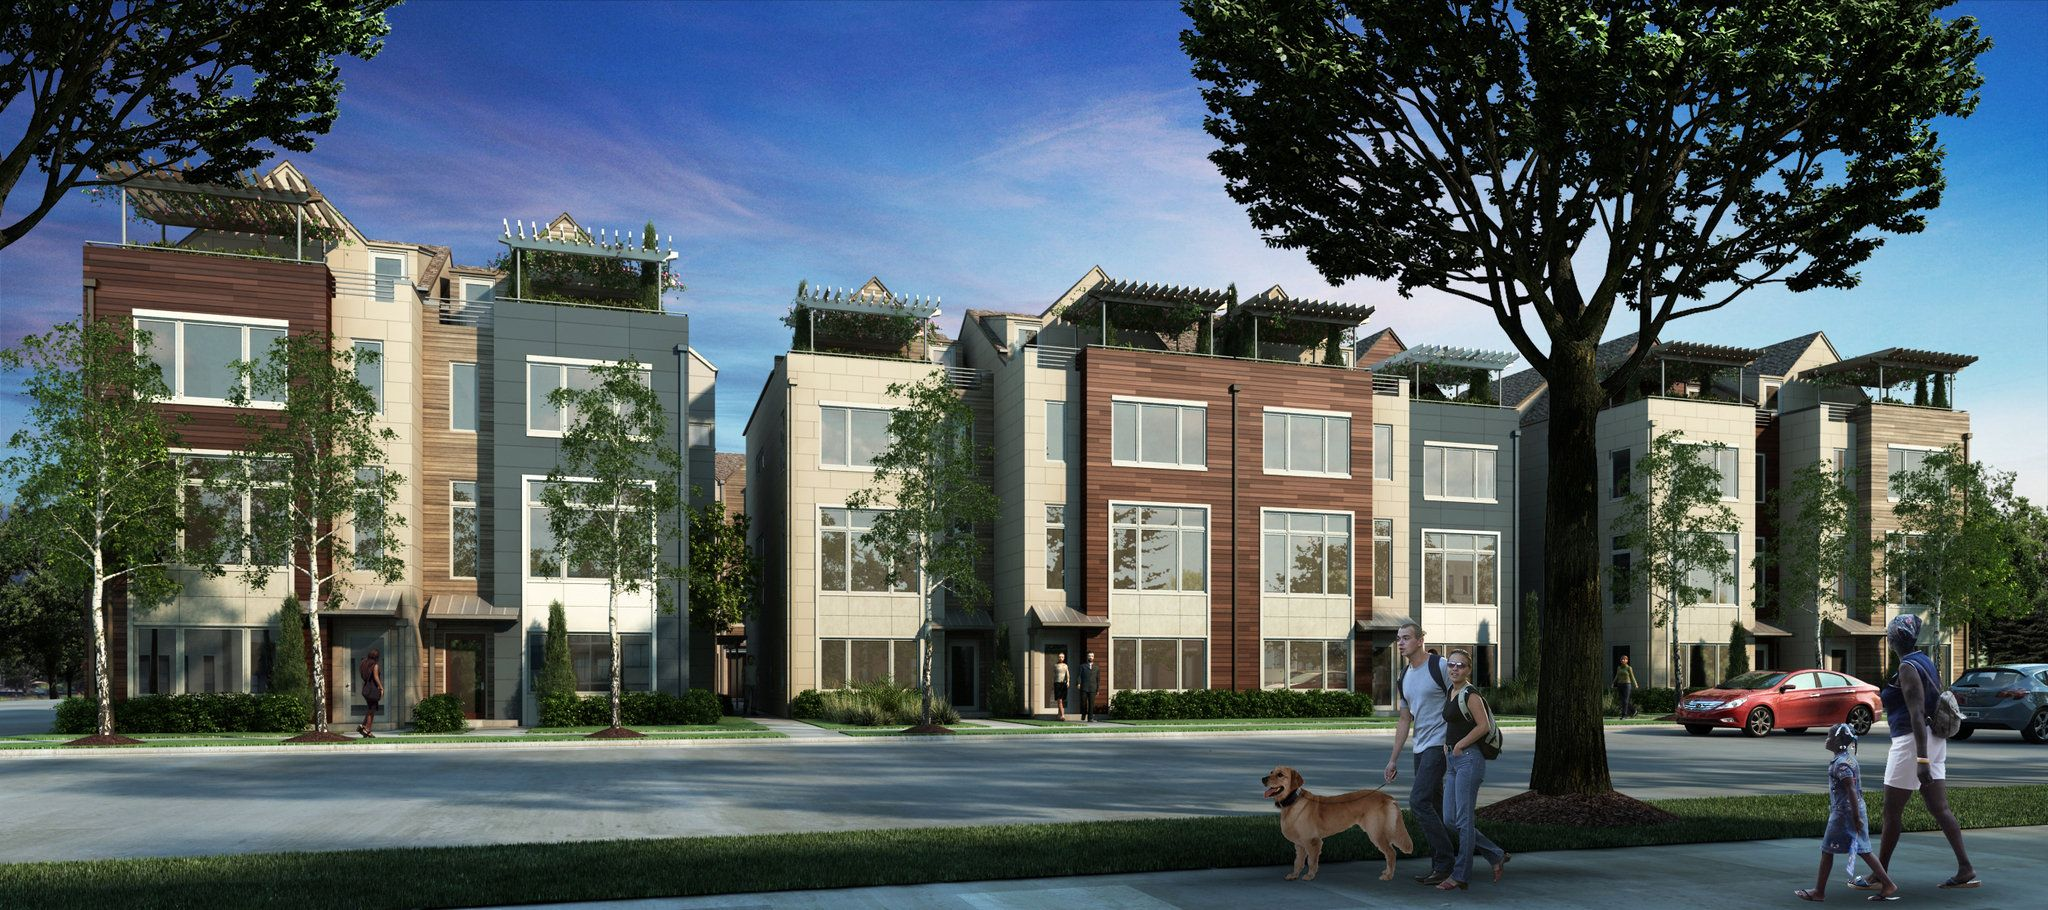 Townhouse project in cleveland 39 s university circle bucks for Townhouse architectural styles